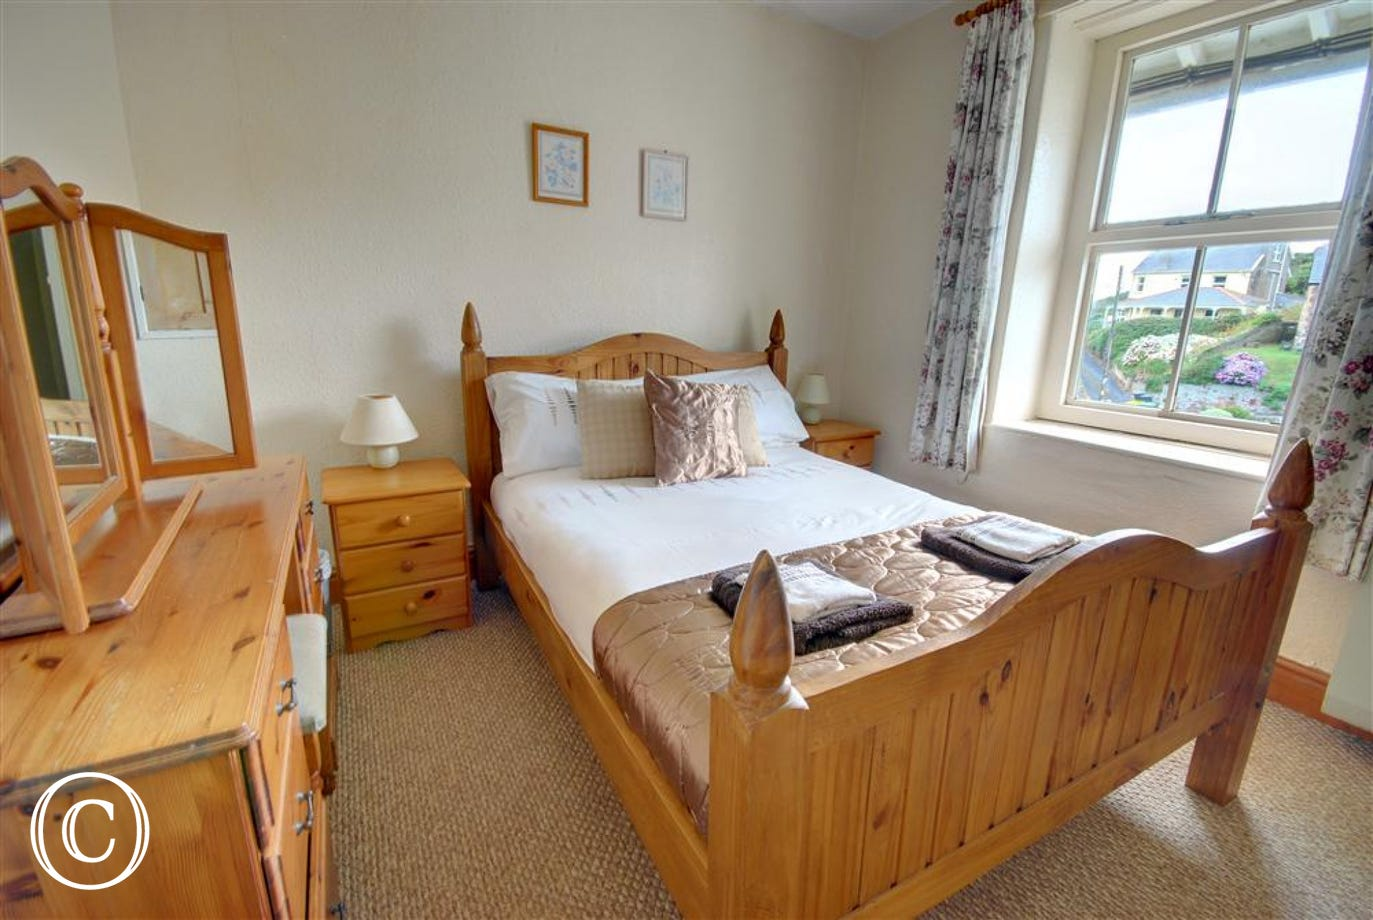 Double bedroom with matching pine furniture and views across the village and beyond